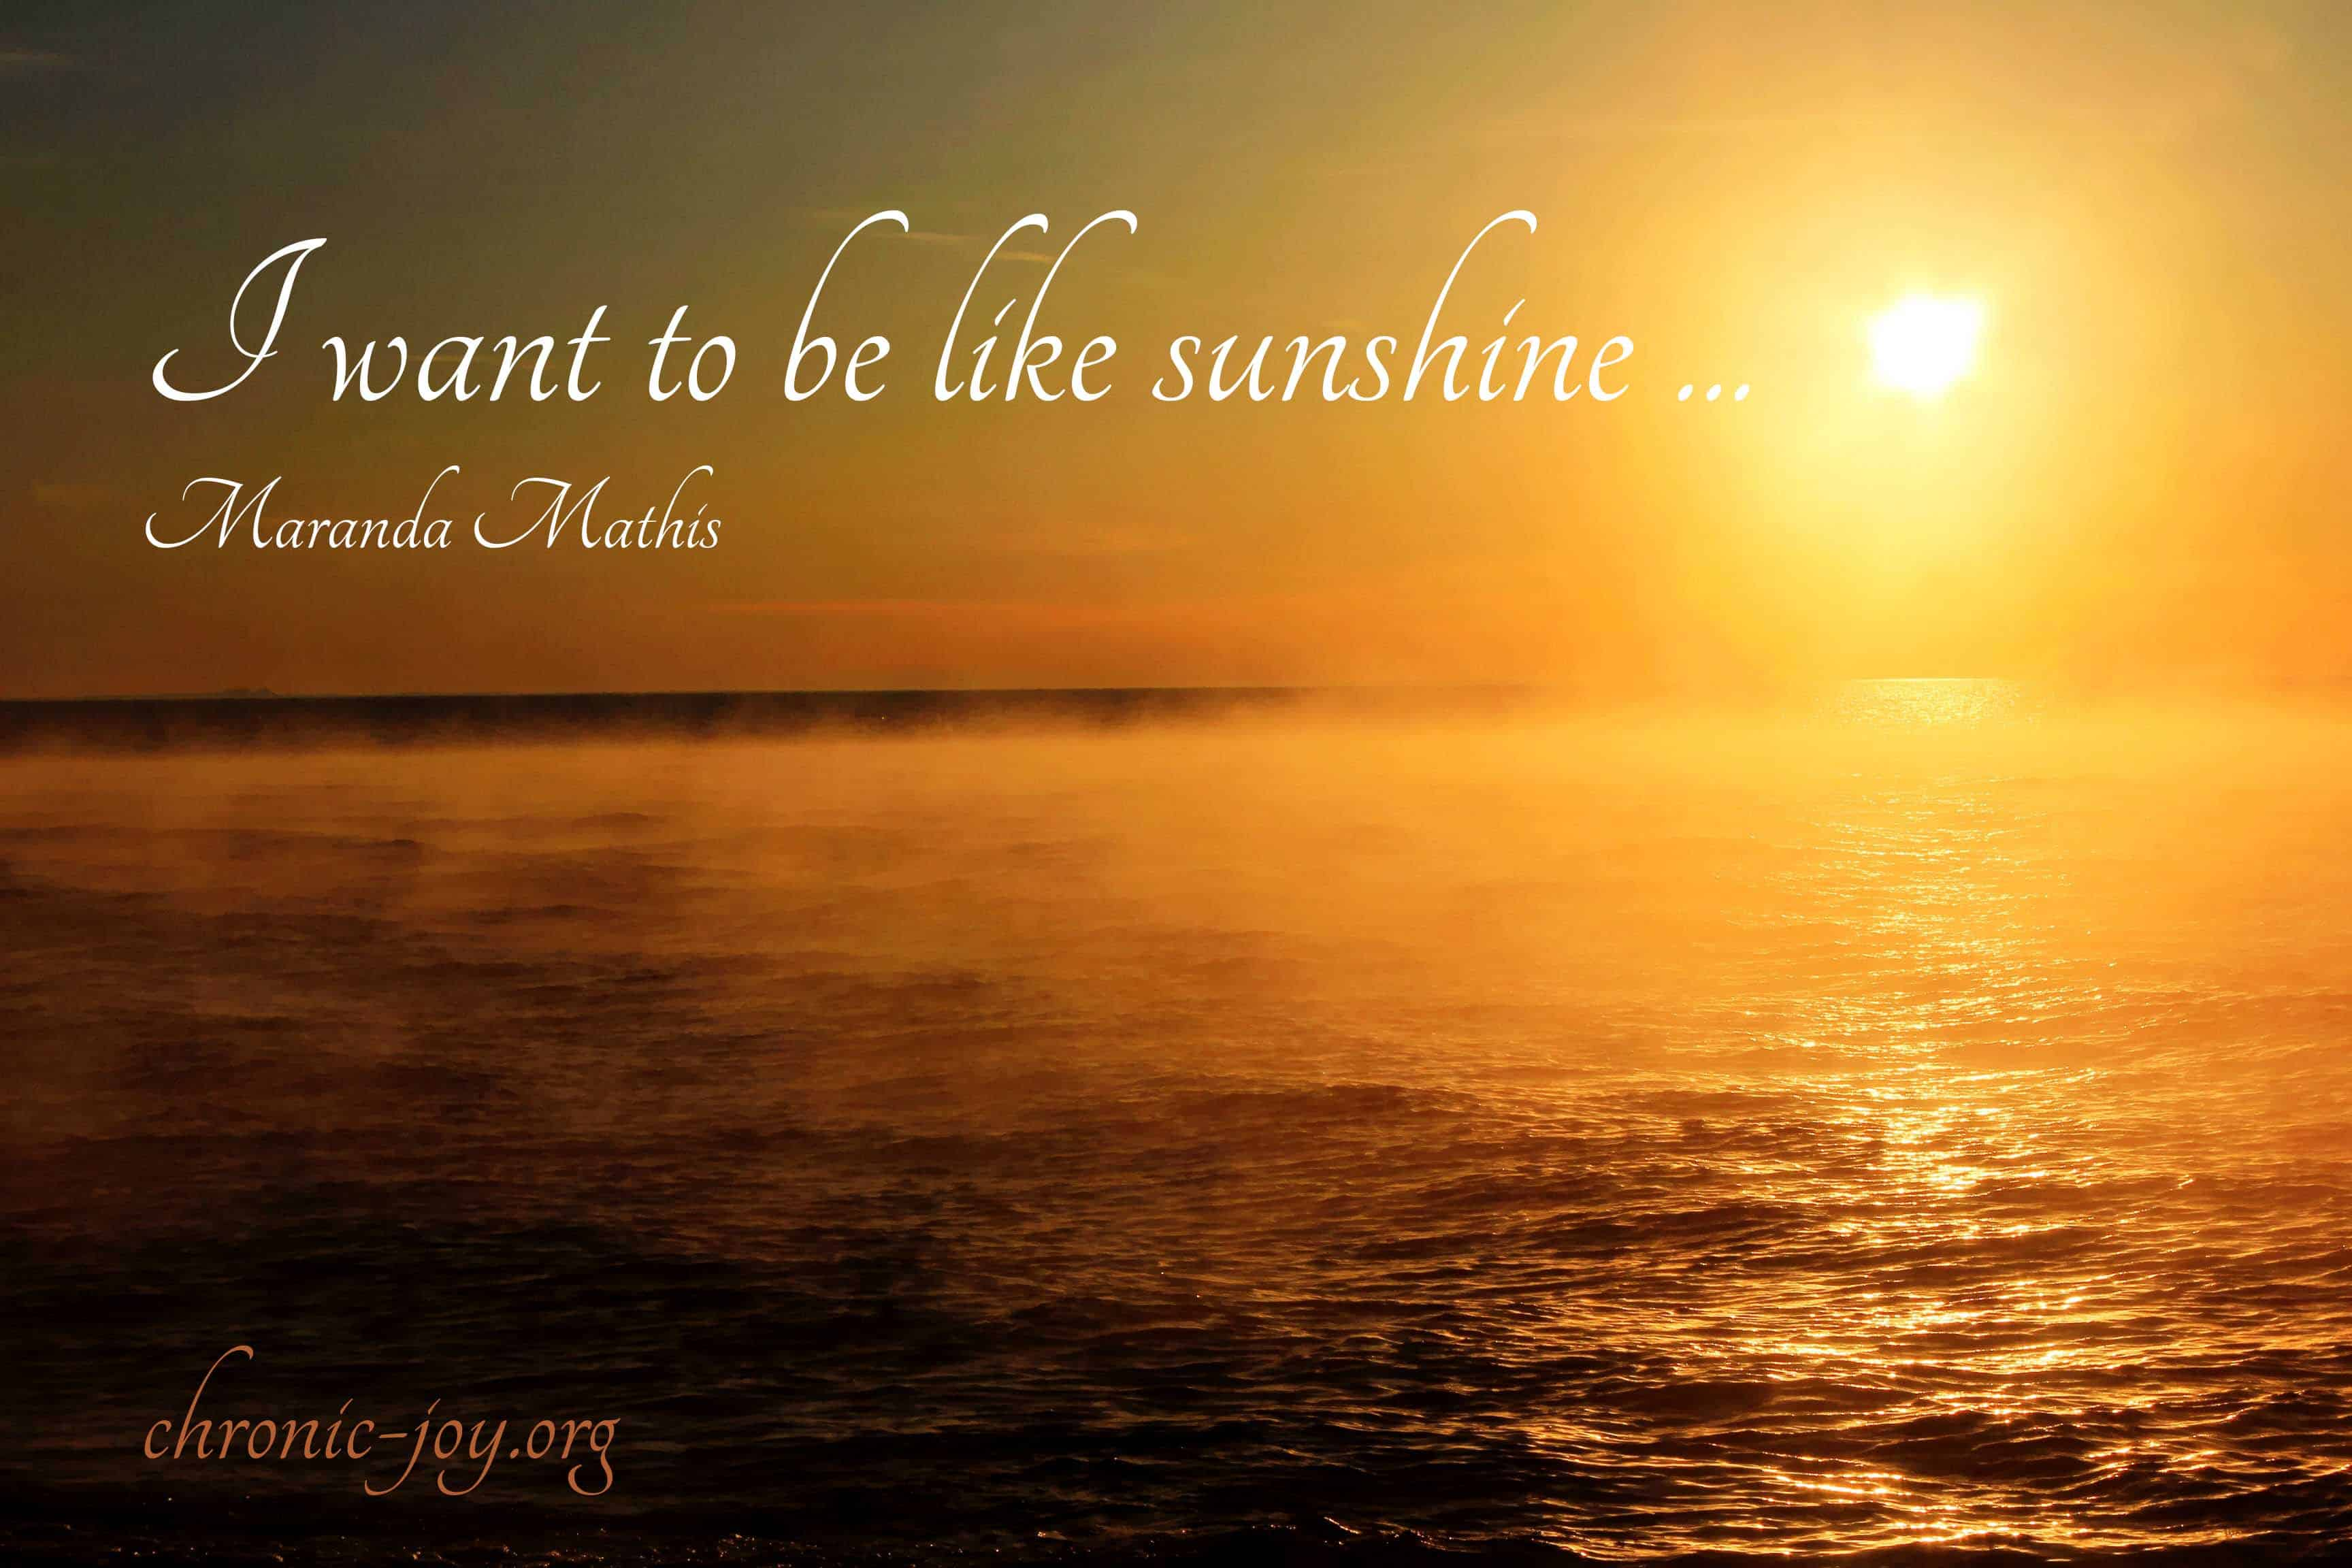 I want to be like sunshine ...